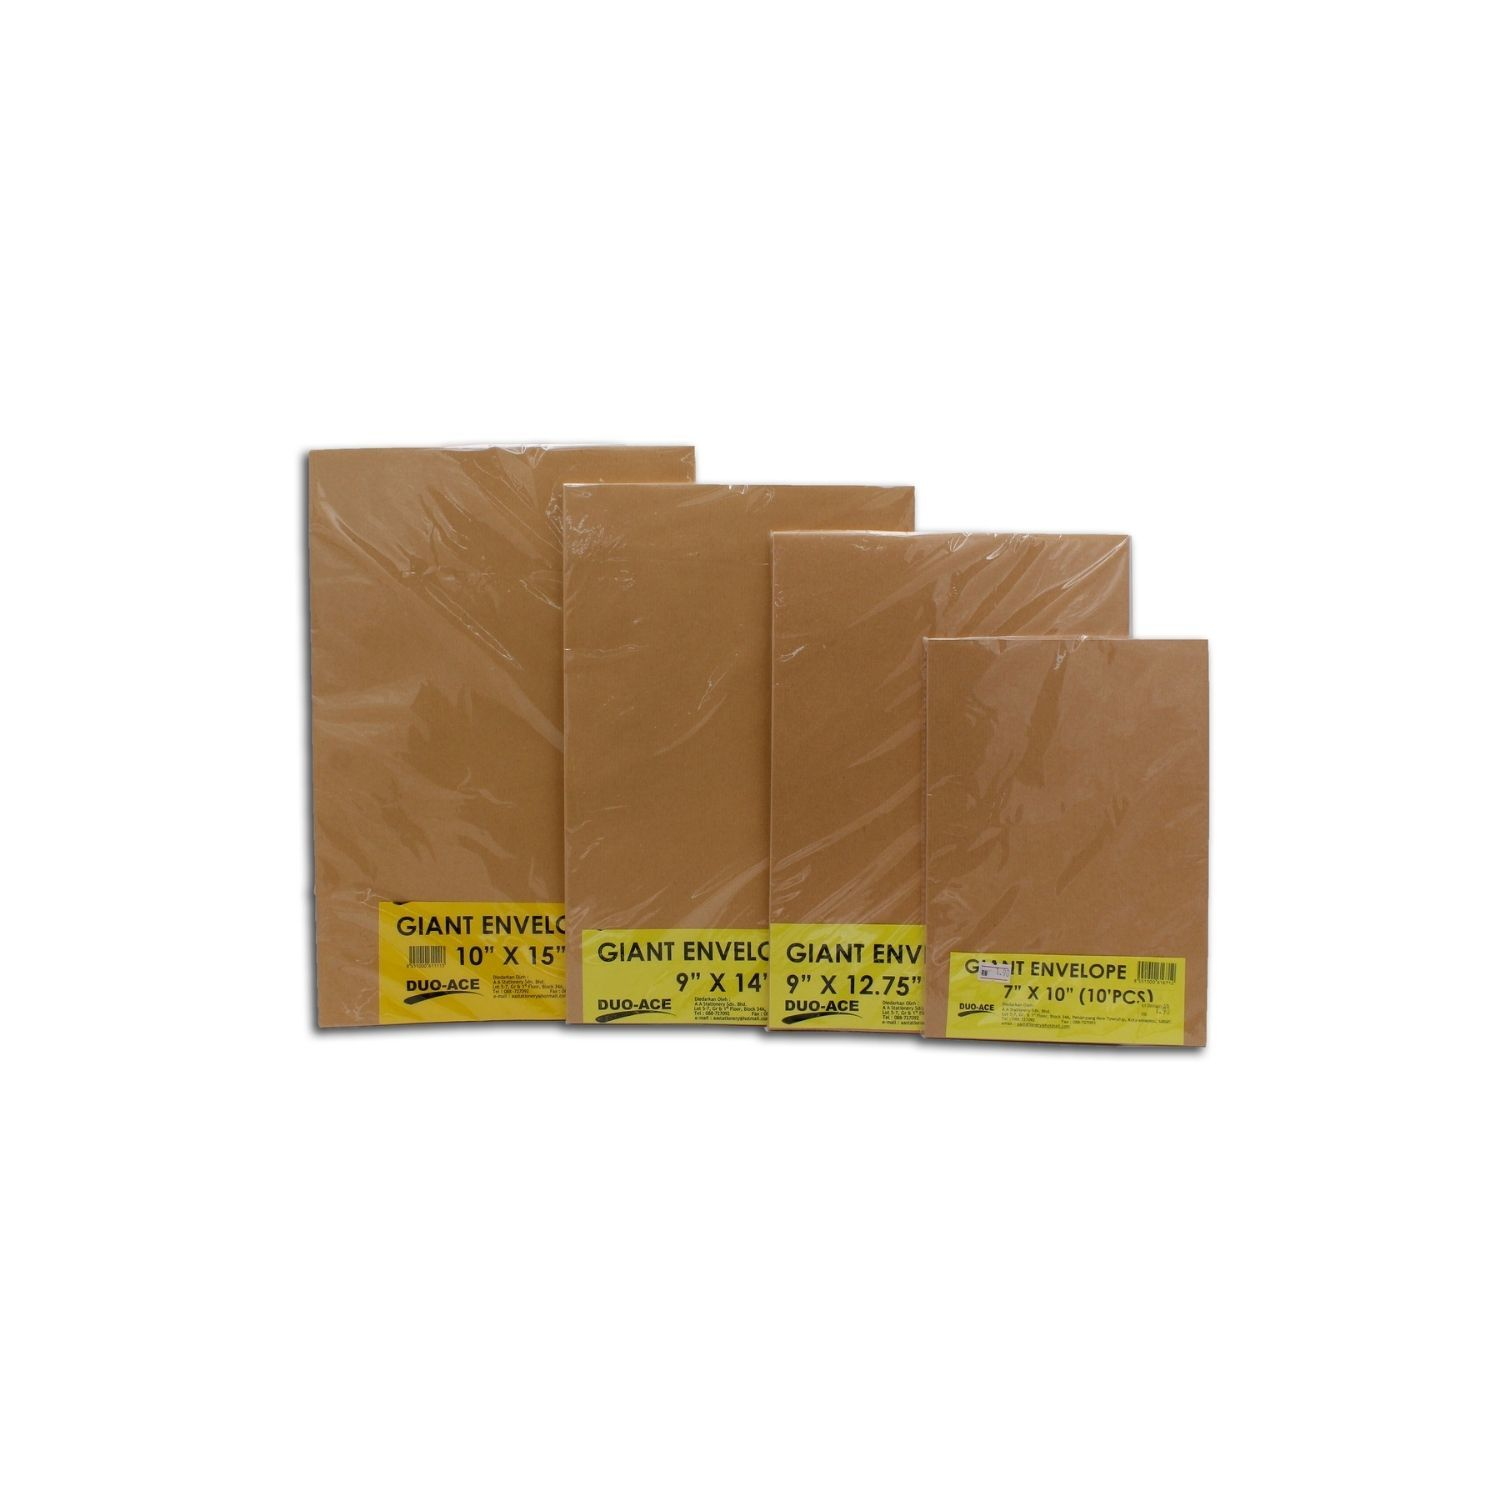 Giant Envelope Brown,,,.jpg